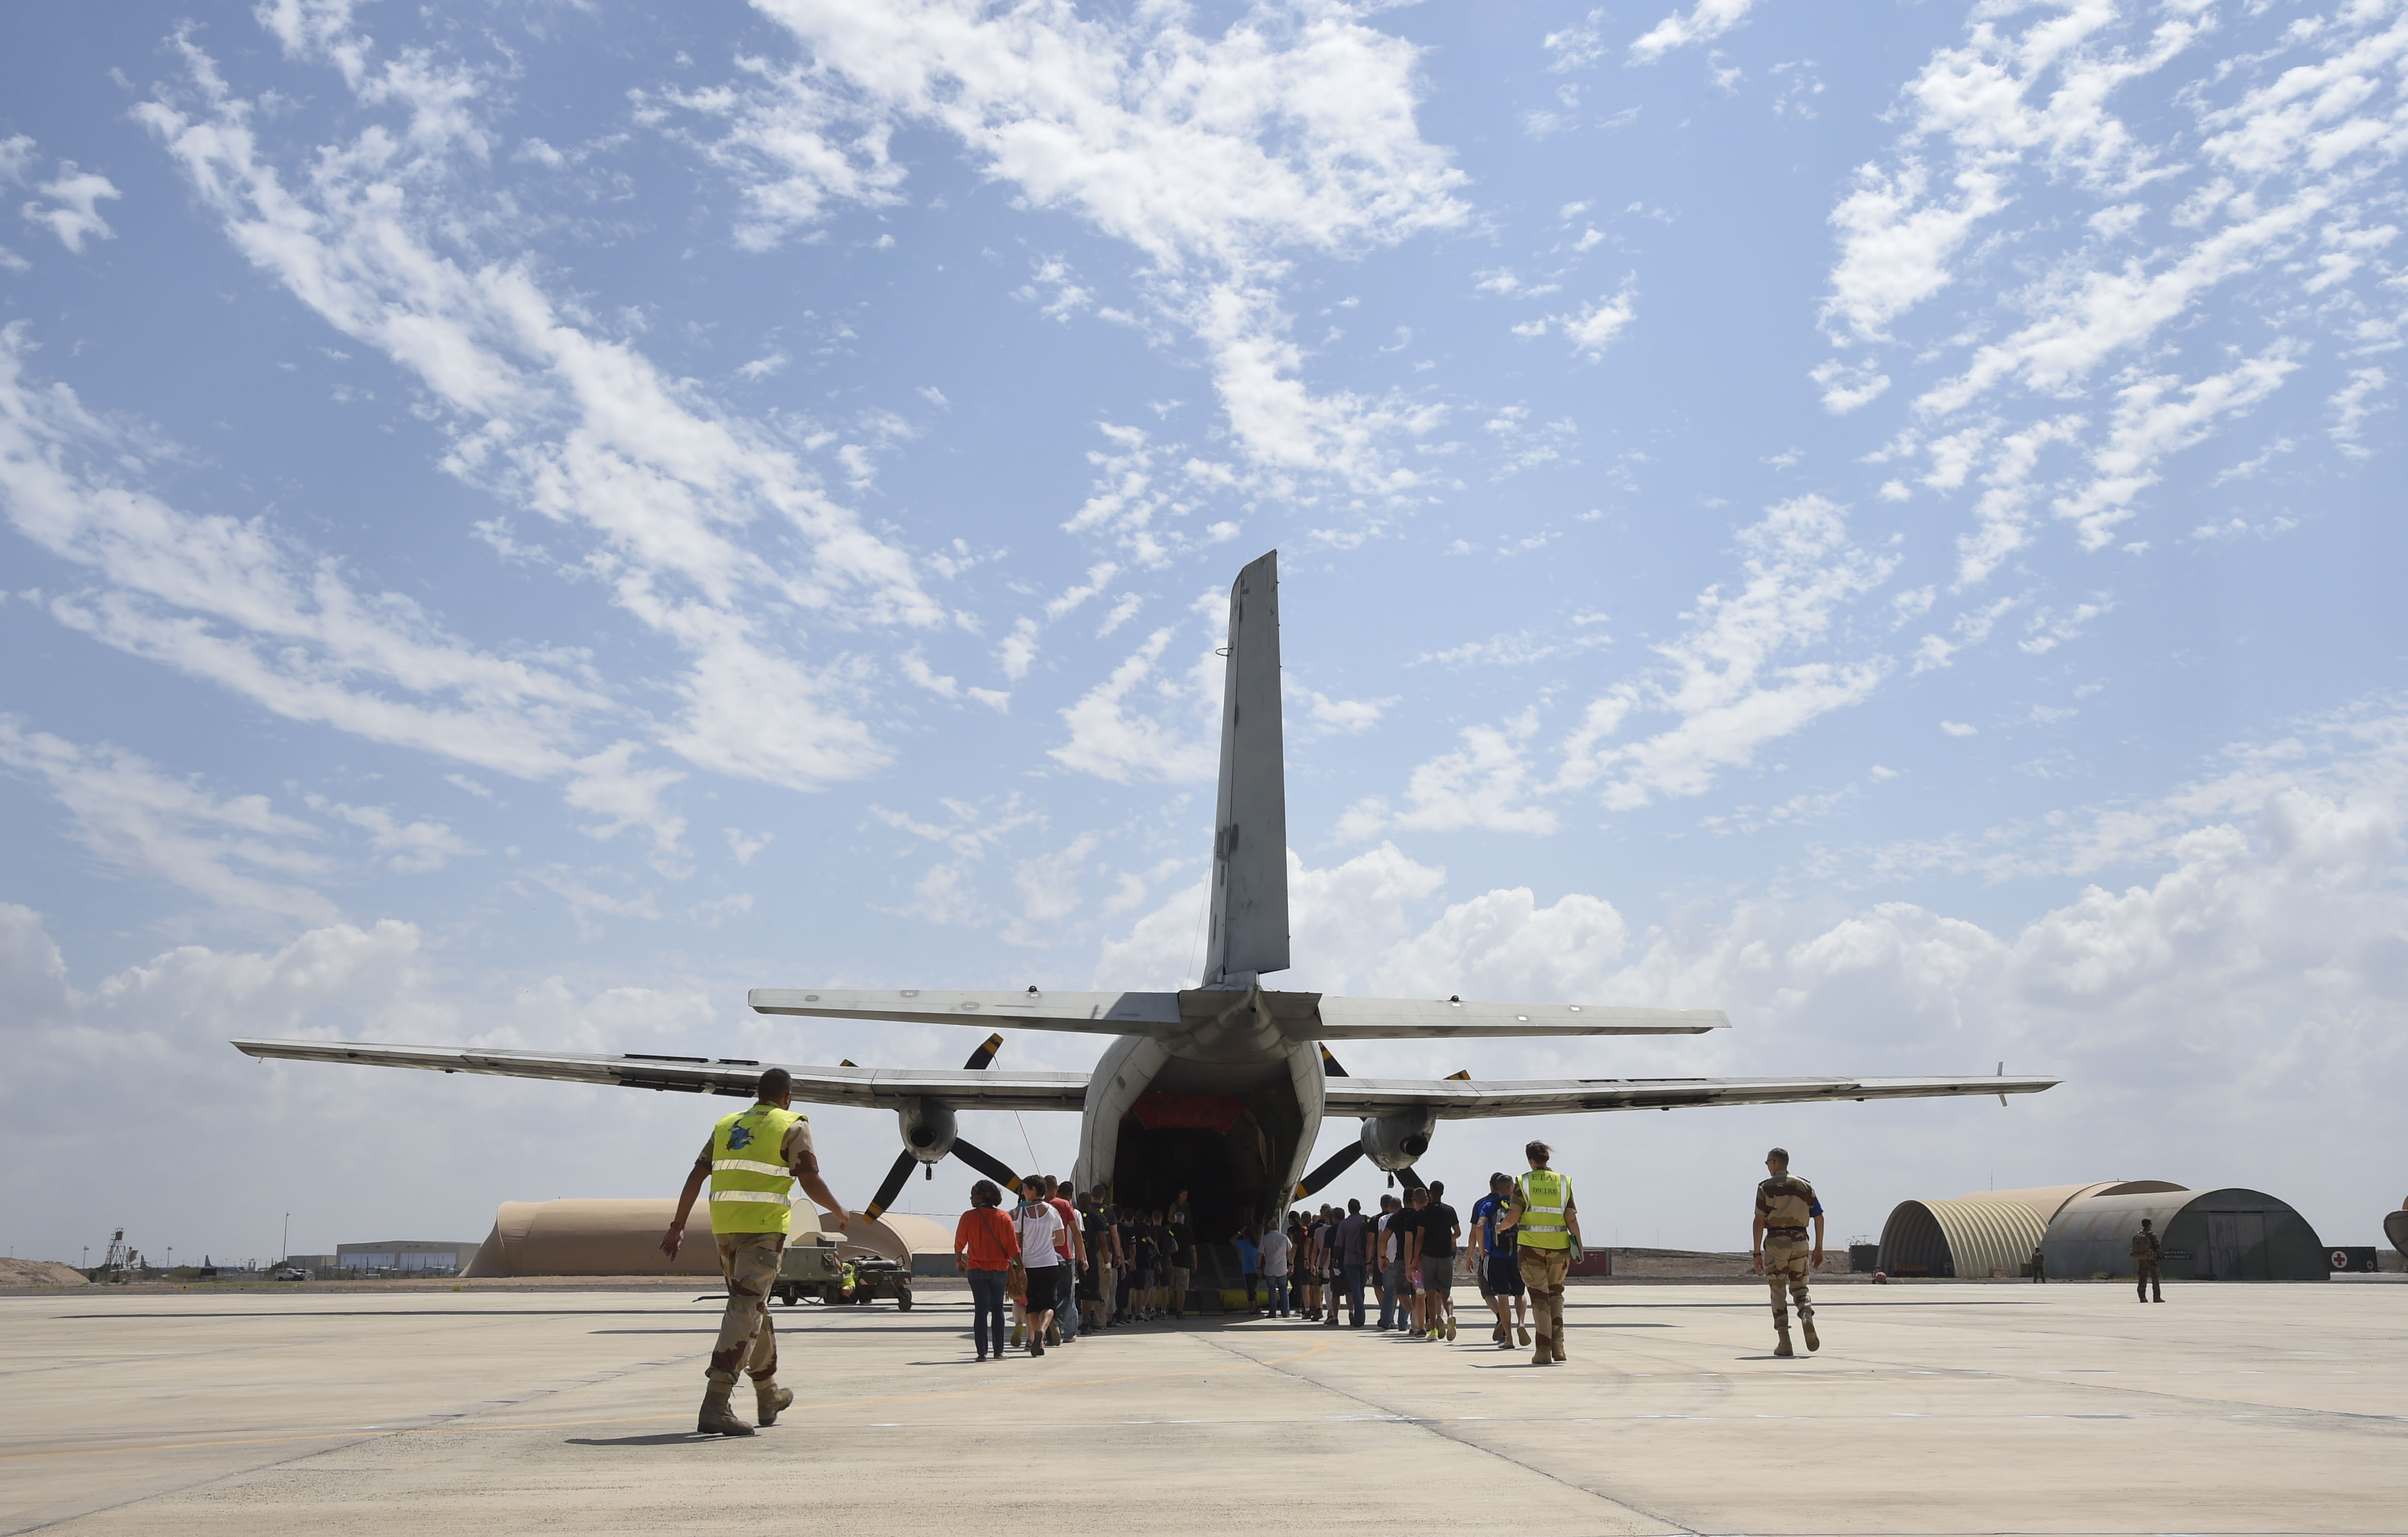 U.S. service members assigned to Combined Joint Task Force-Horn of Africa and volunteers proceed to an aircraft during a non-combatant evacuation exercise (NEO) at the French Marine 5th Regiment, Nov. 16, 2016, in Djibouti, Djibouti. Participants boarded the aircraft, simulated a flight, and then unloaded off the plane for the final portion of the exercise hosted by the French. (U.S. Air National Guard photo by Staff Sgt. Penny Snoozy)